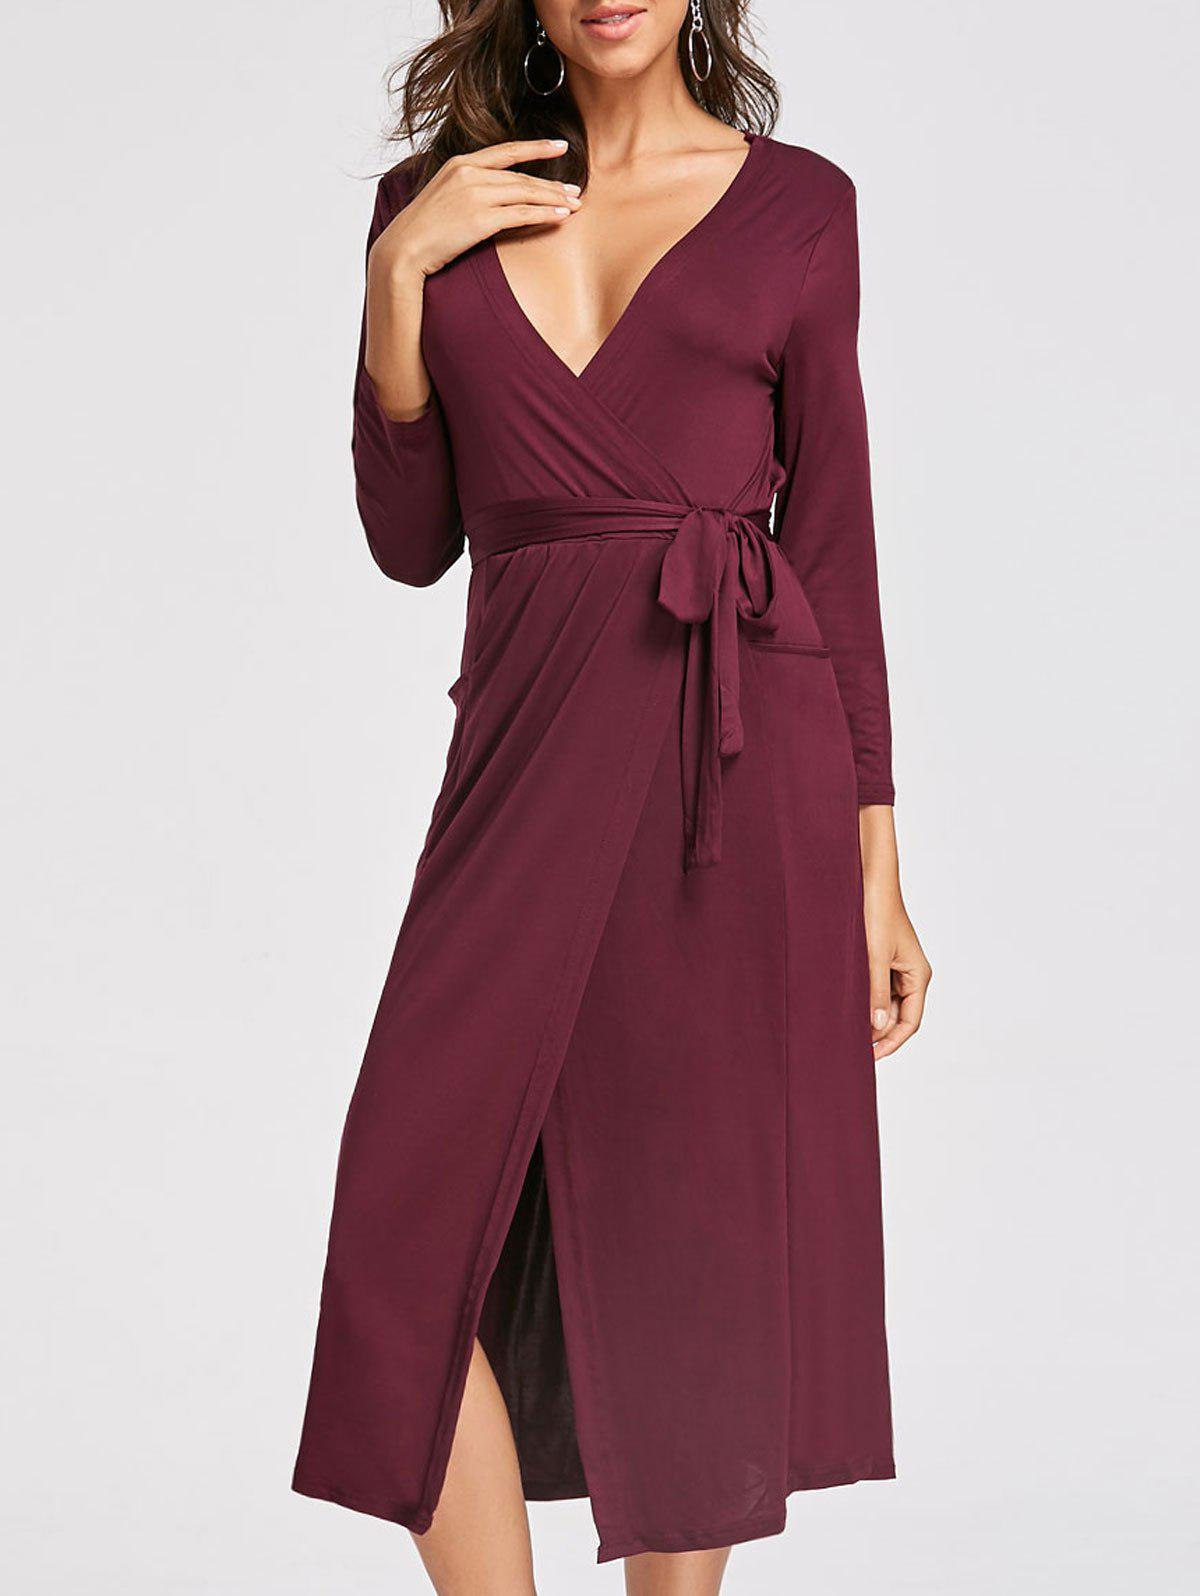 Plunging Neckline High Low Midi Dress - WINE RED L